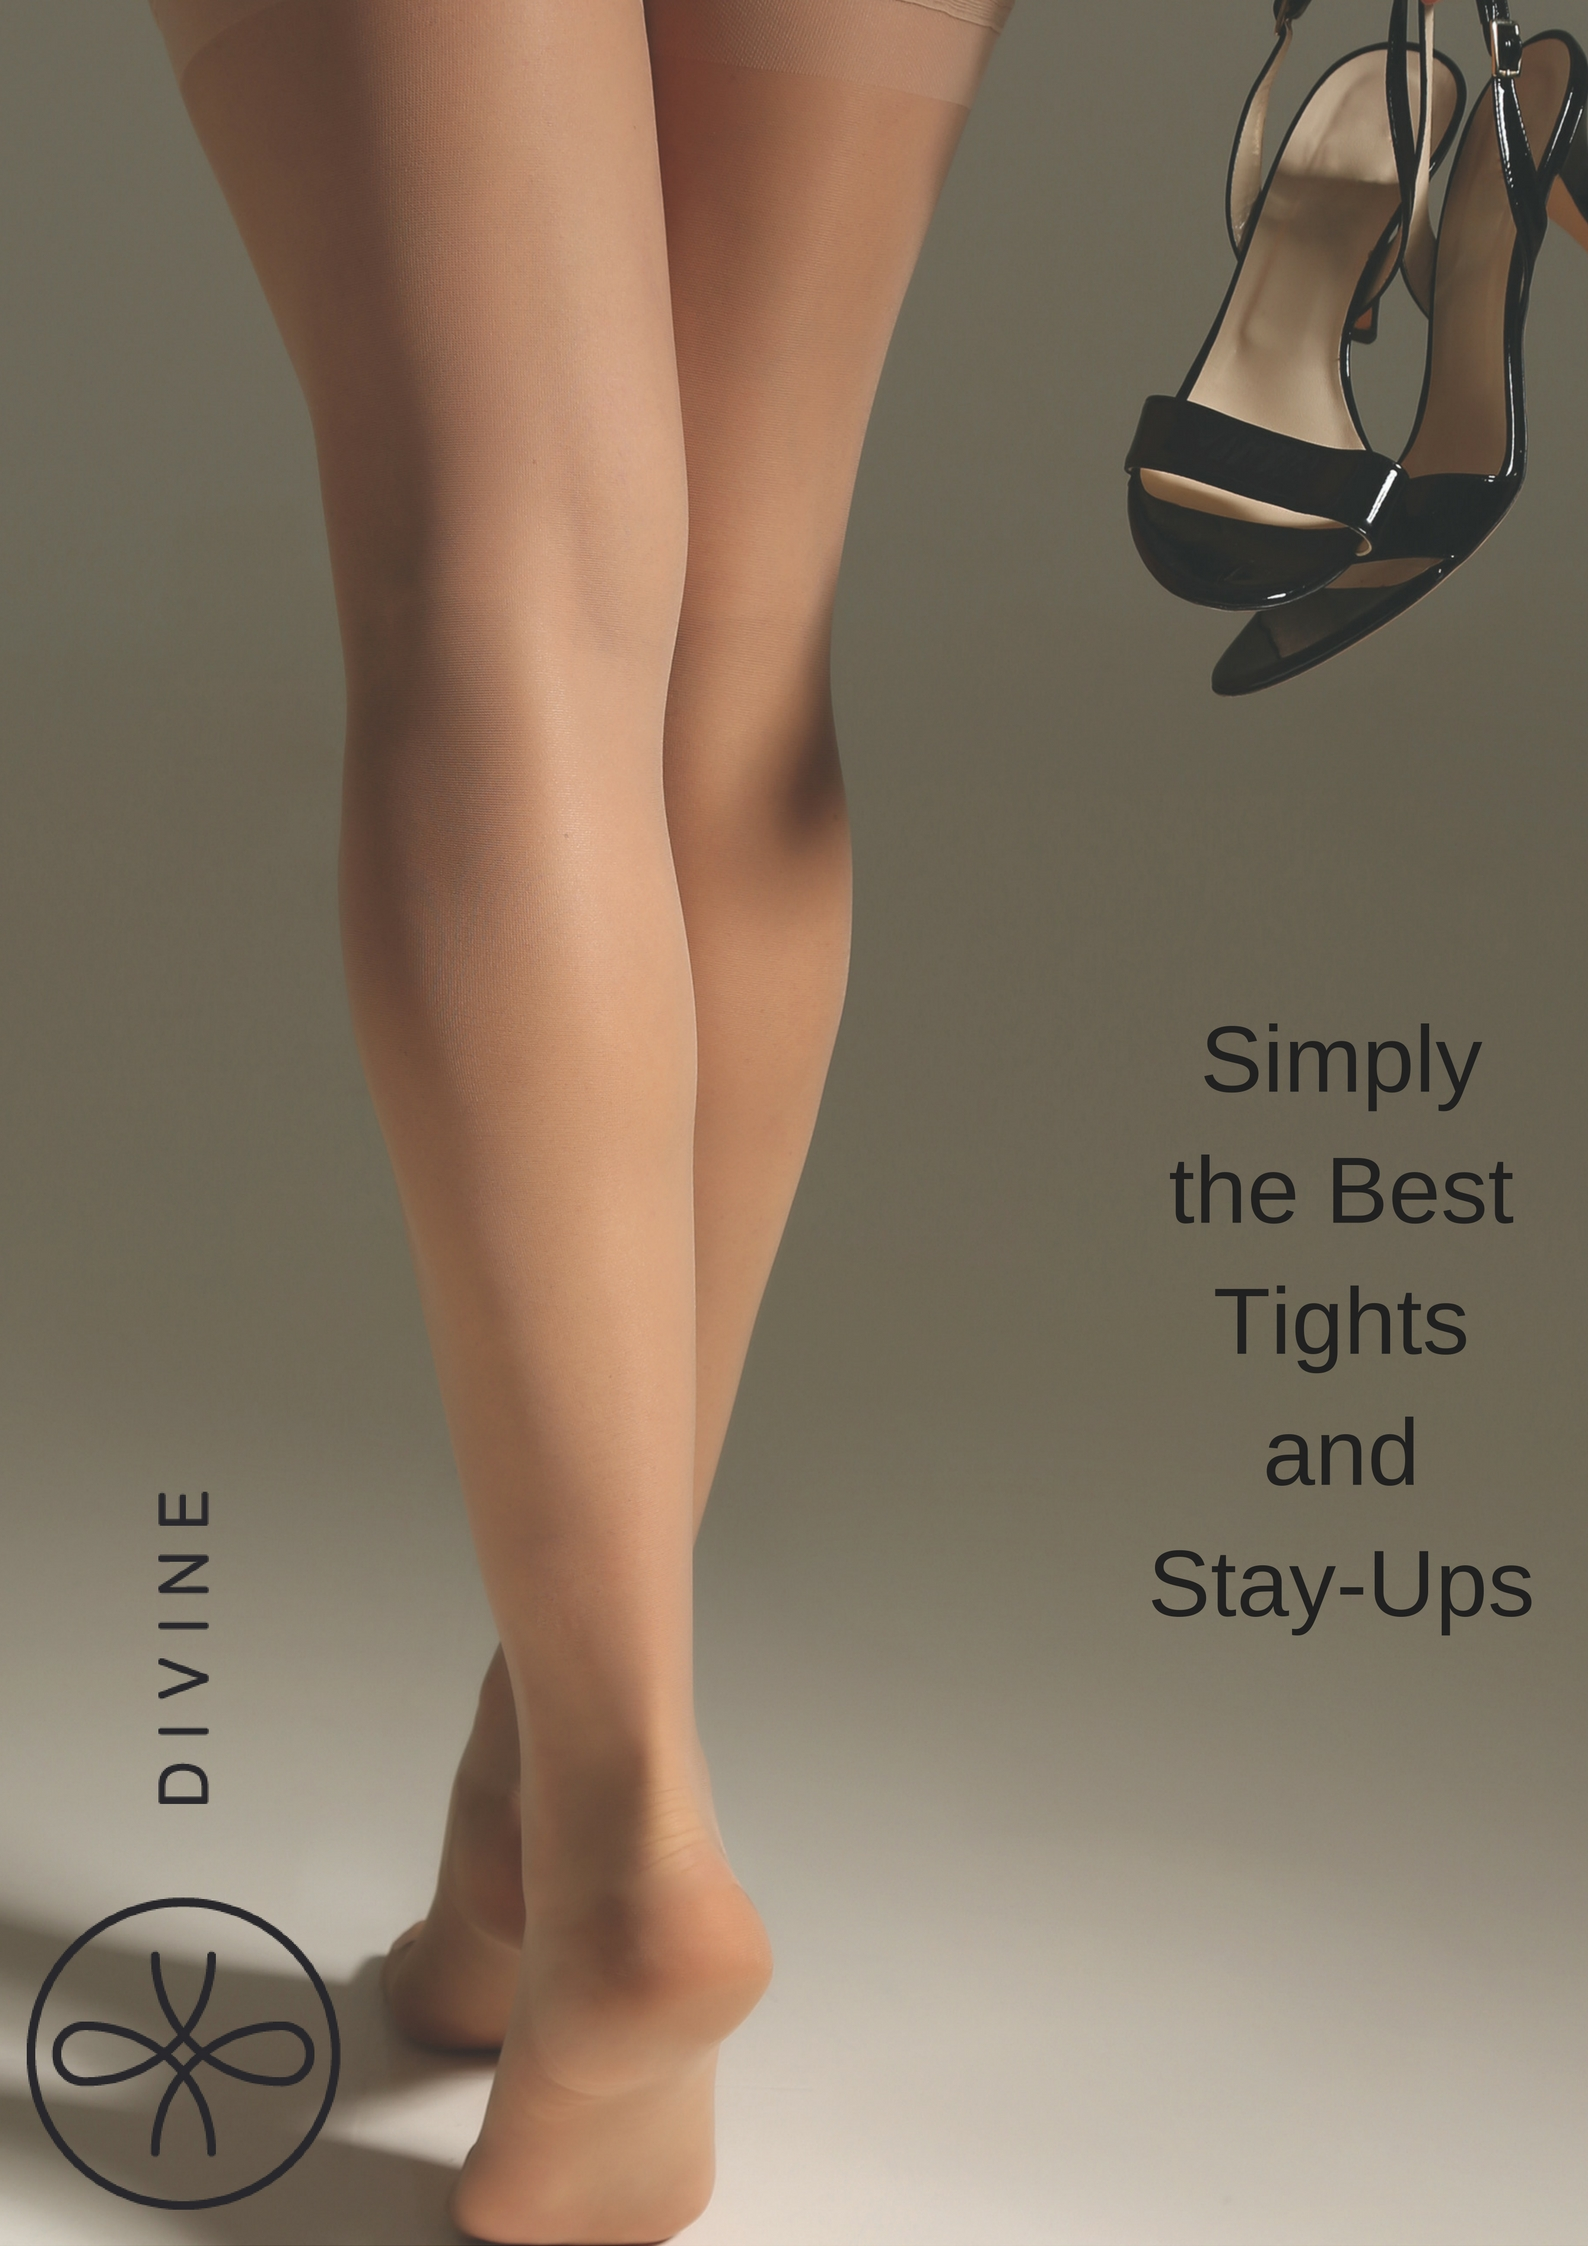 Simply the best tights and stay-ups